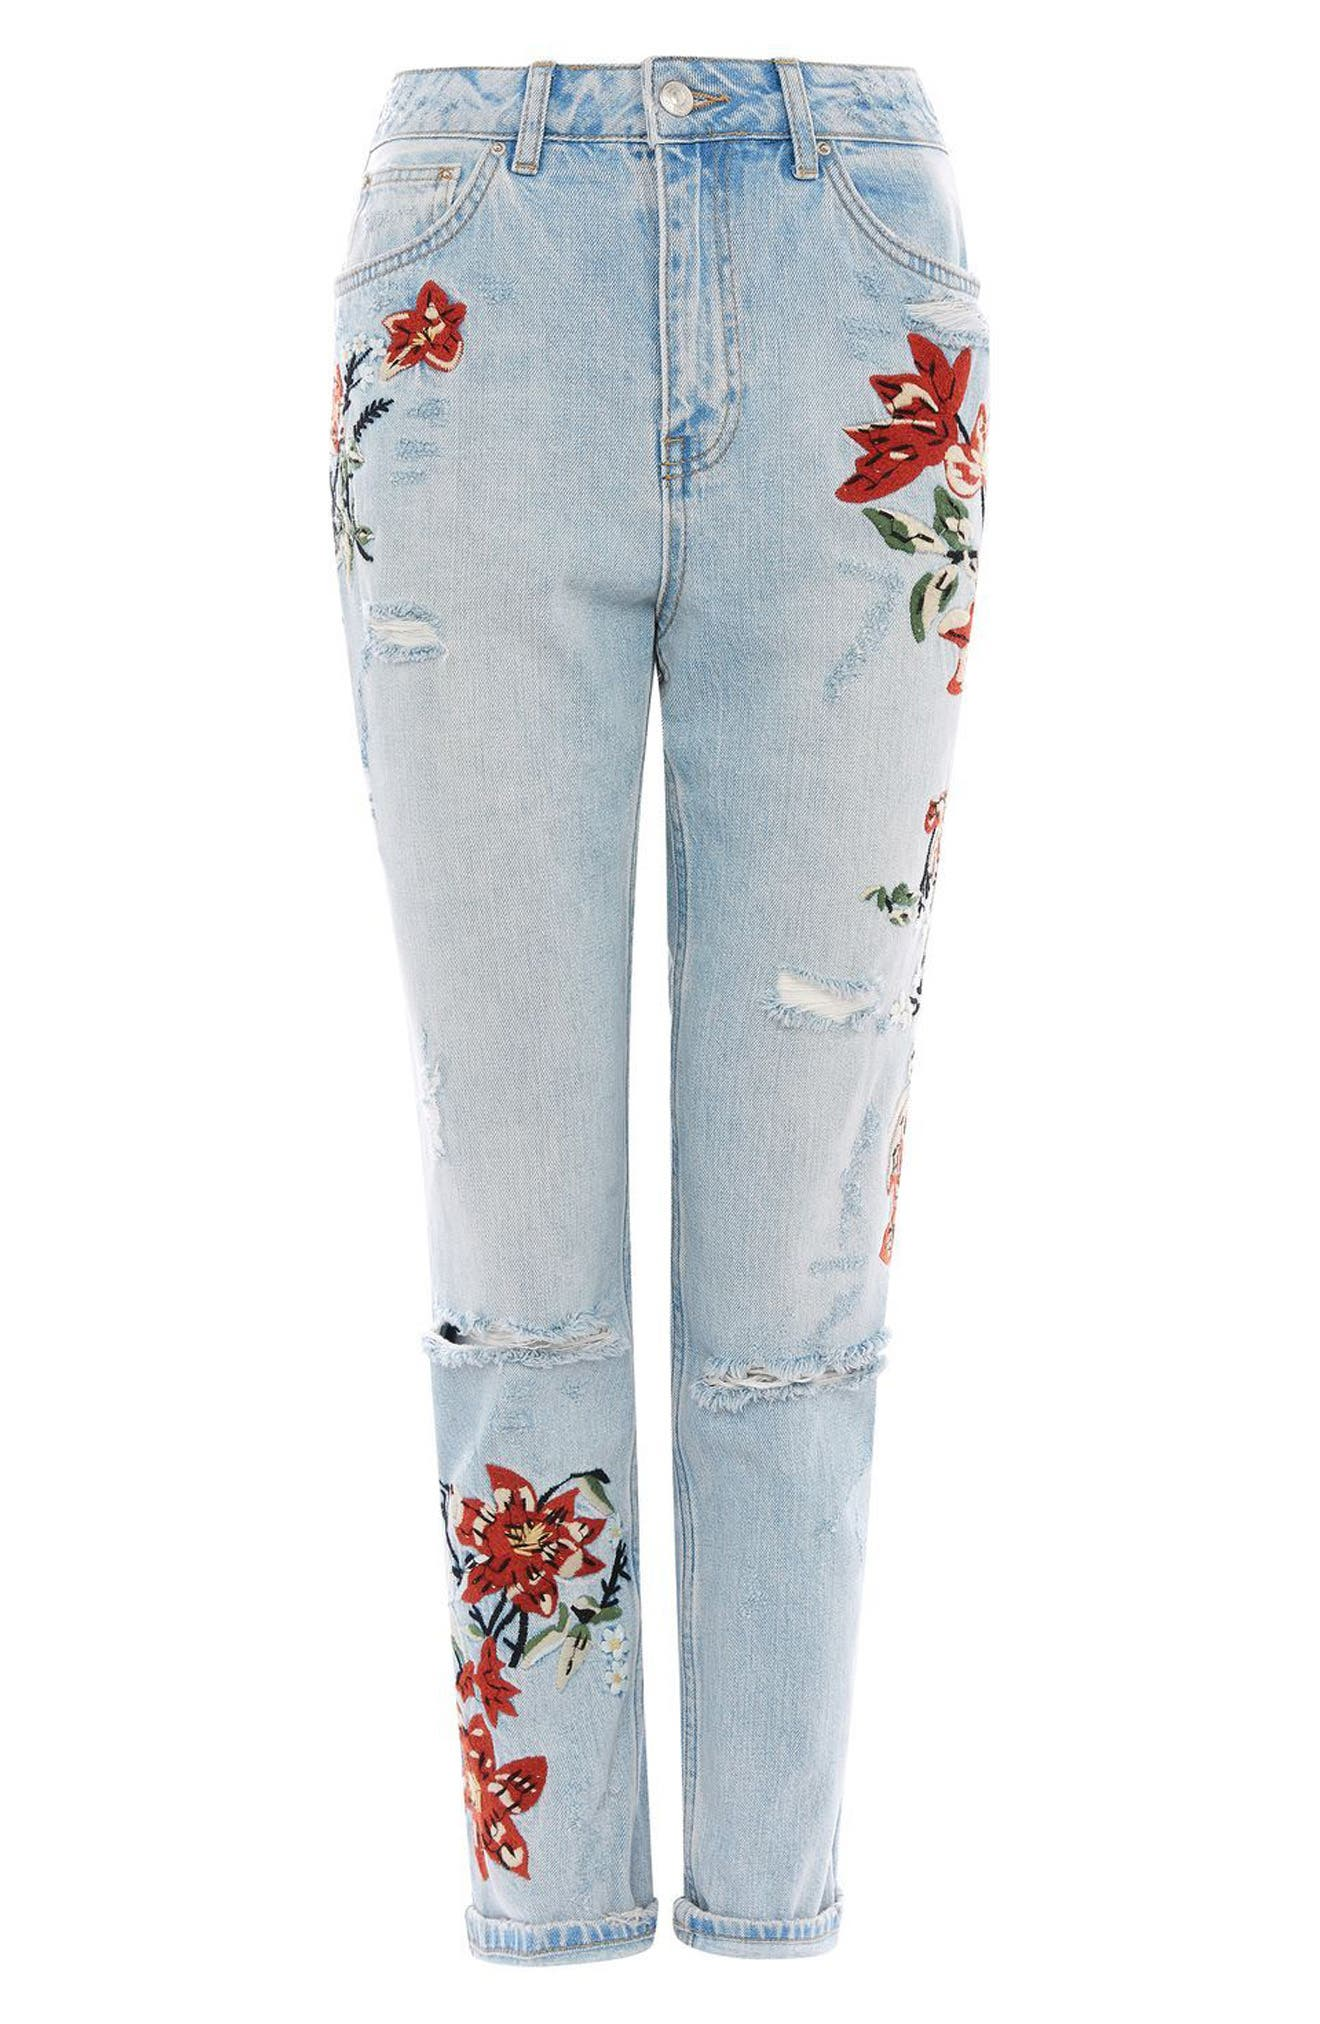 Fire Flower High Rise Ripped Mom Jeans,                             Alternate thumbnail 4, color,                             420